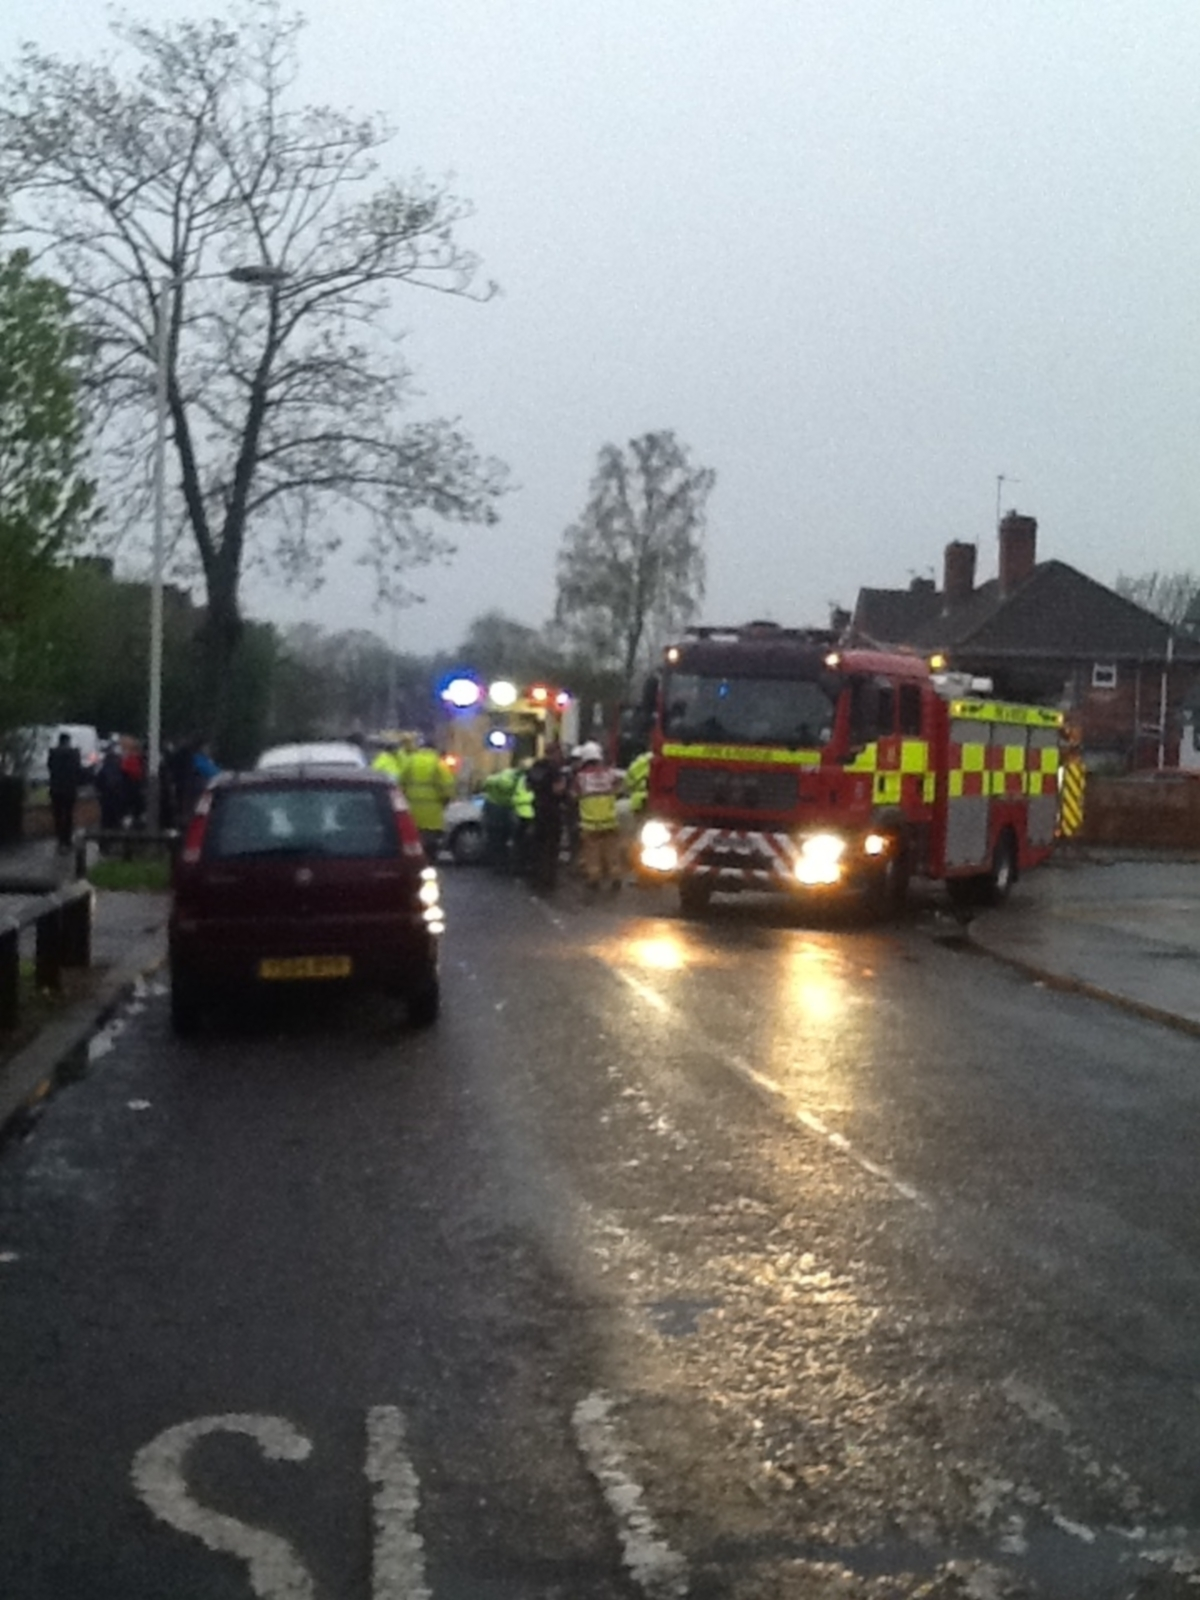 The scene of the accident. Pic: Andy Walker